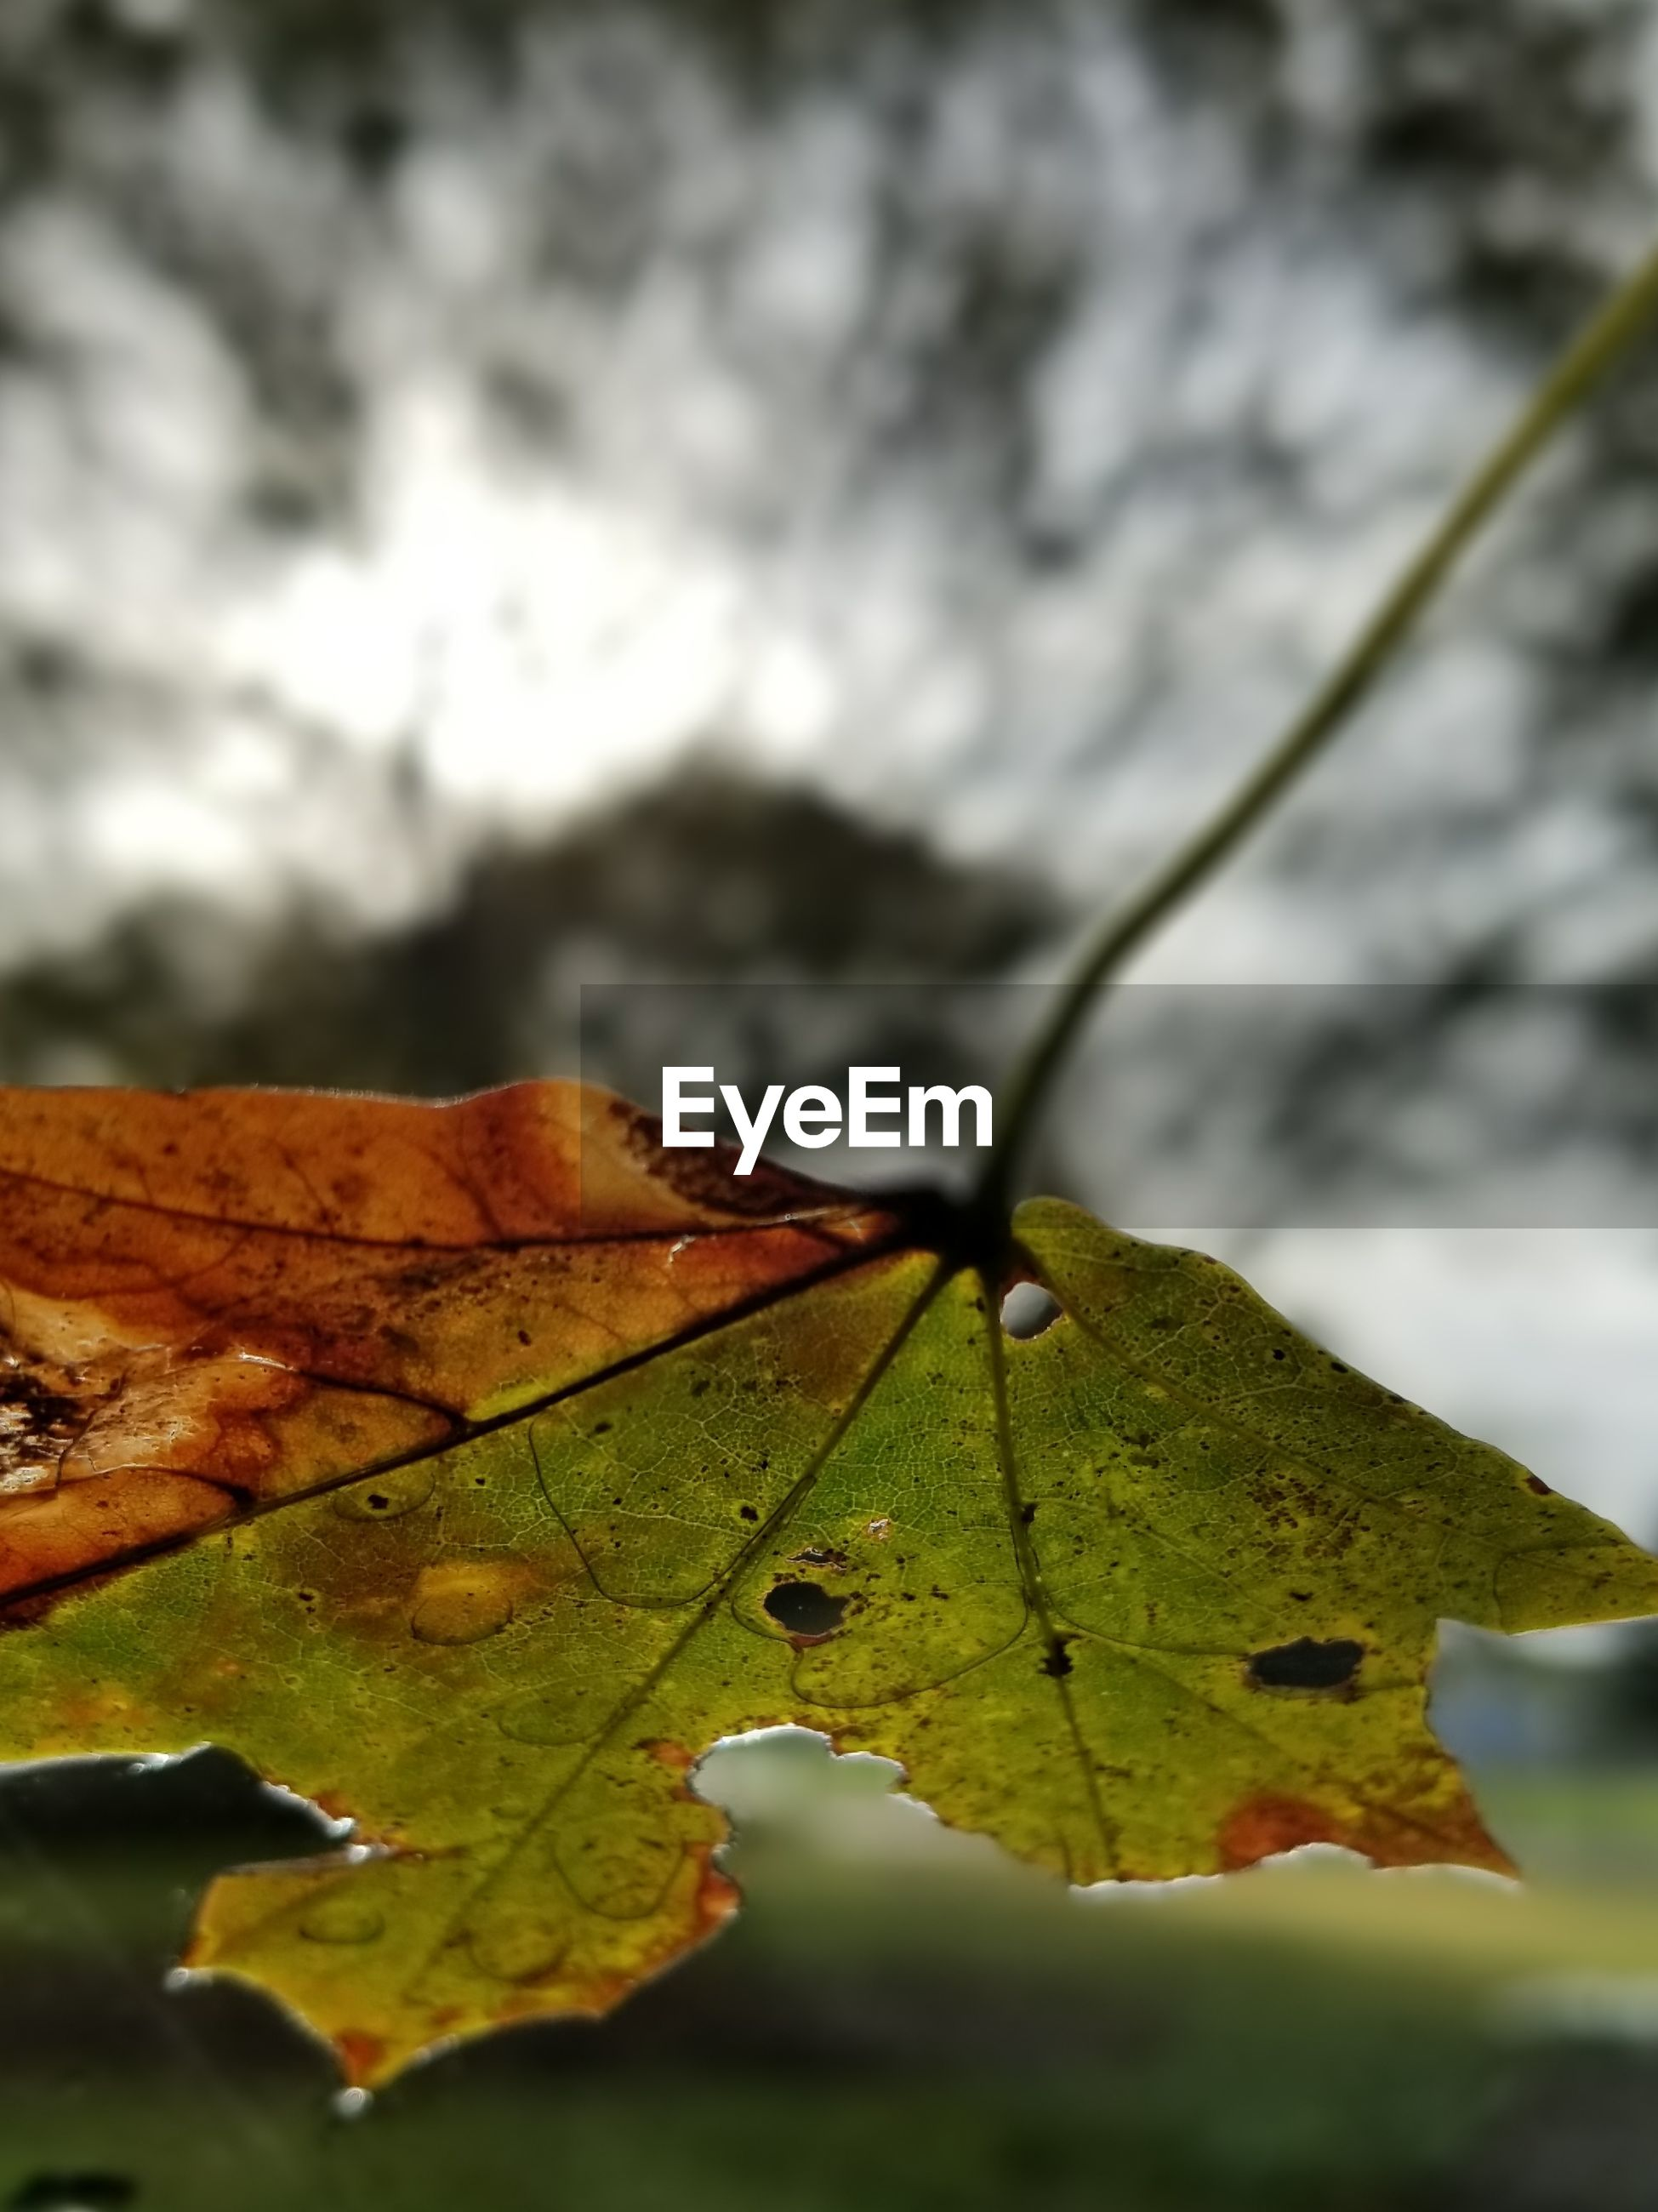 leaf, autumn, change, nature, maple leaf, maple, close-up, outdoors, day, beauty in nature, water, no people, fragility